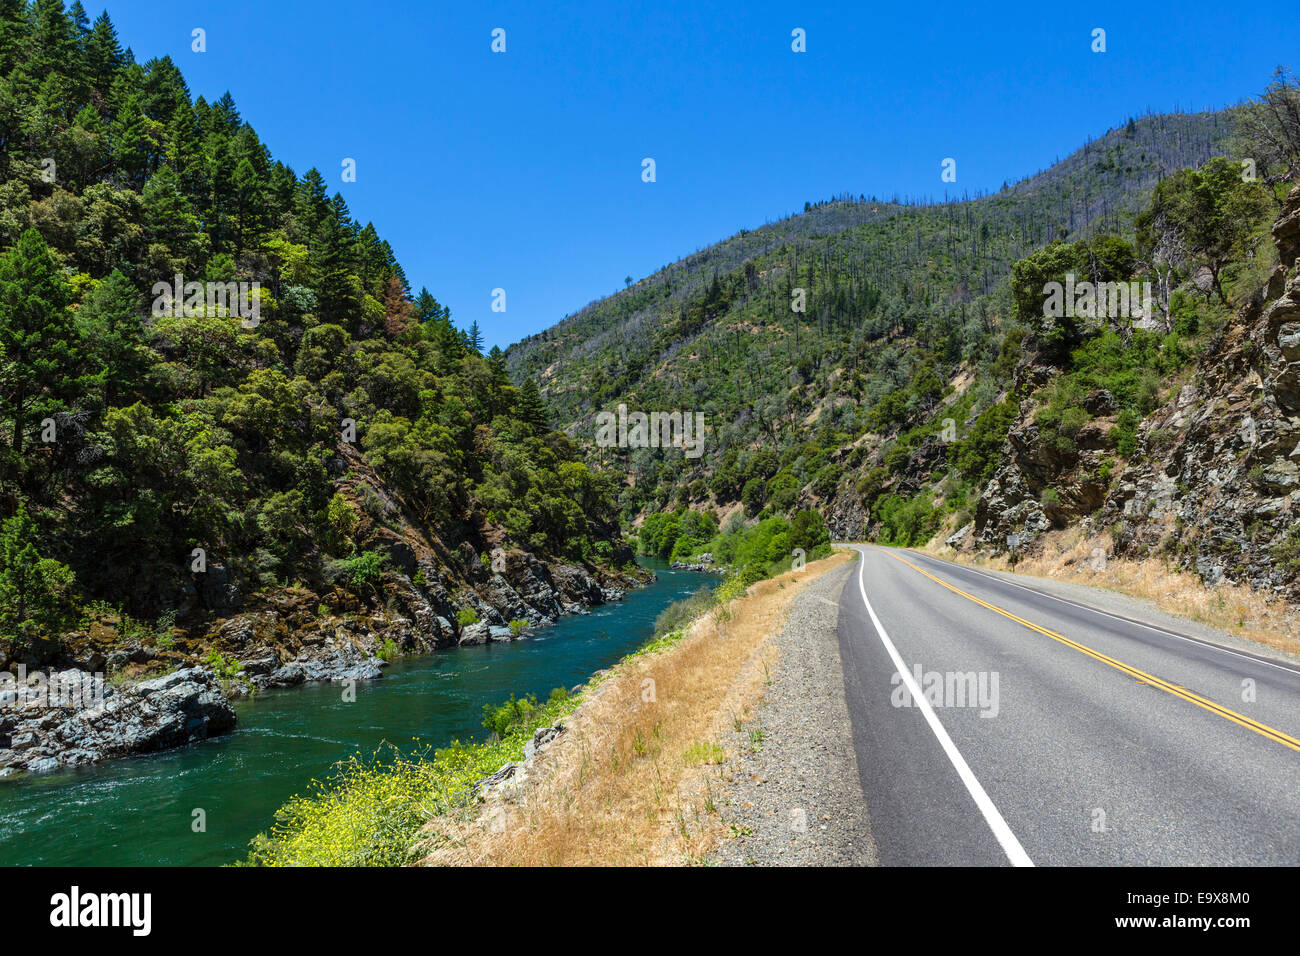 State road 299 alongside Trinity River in Shasta-Trinity National Forest, Northern California, USA - Stock Image